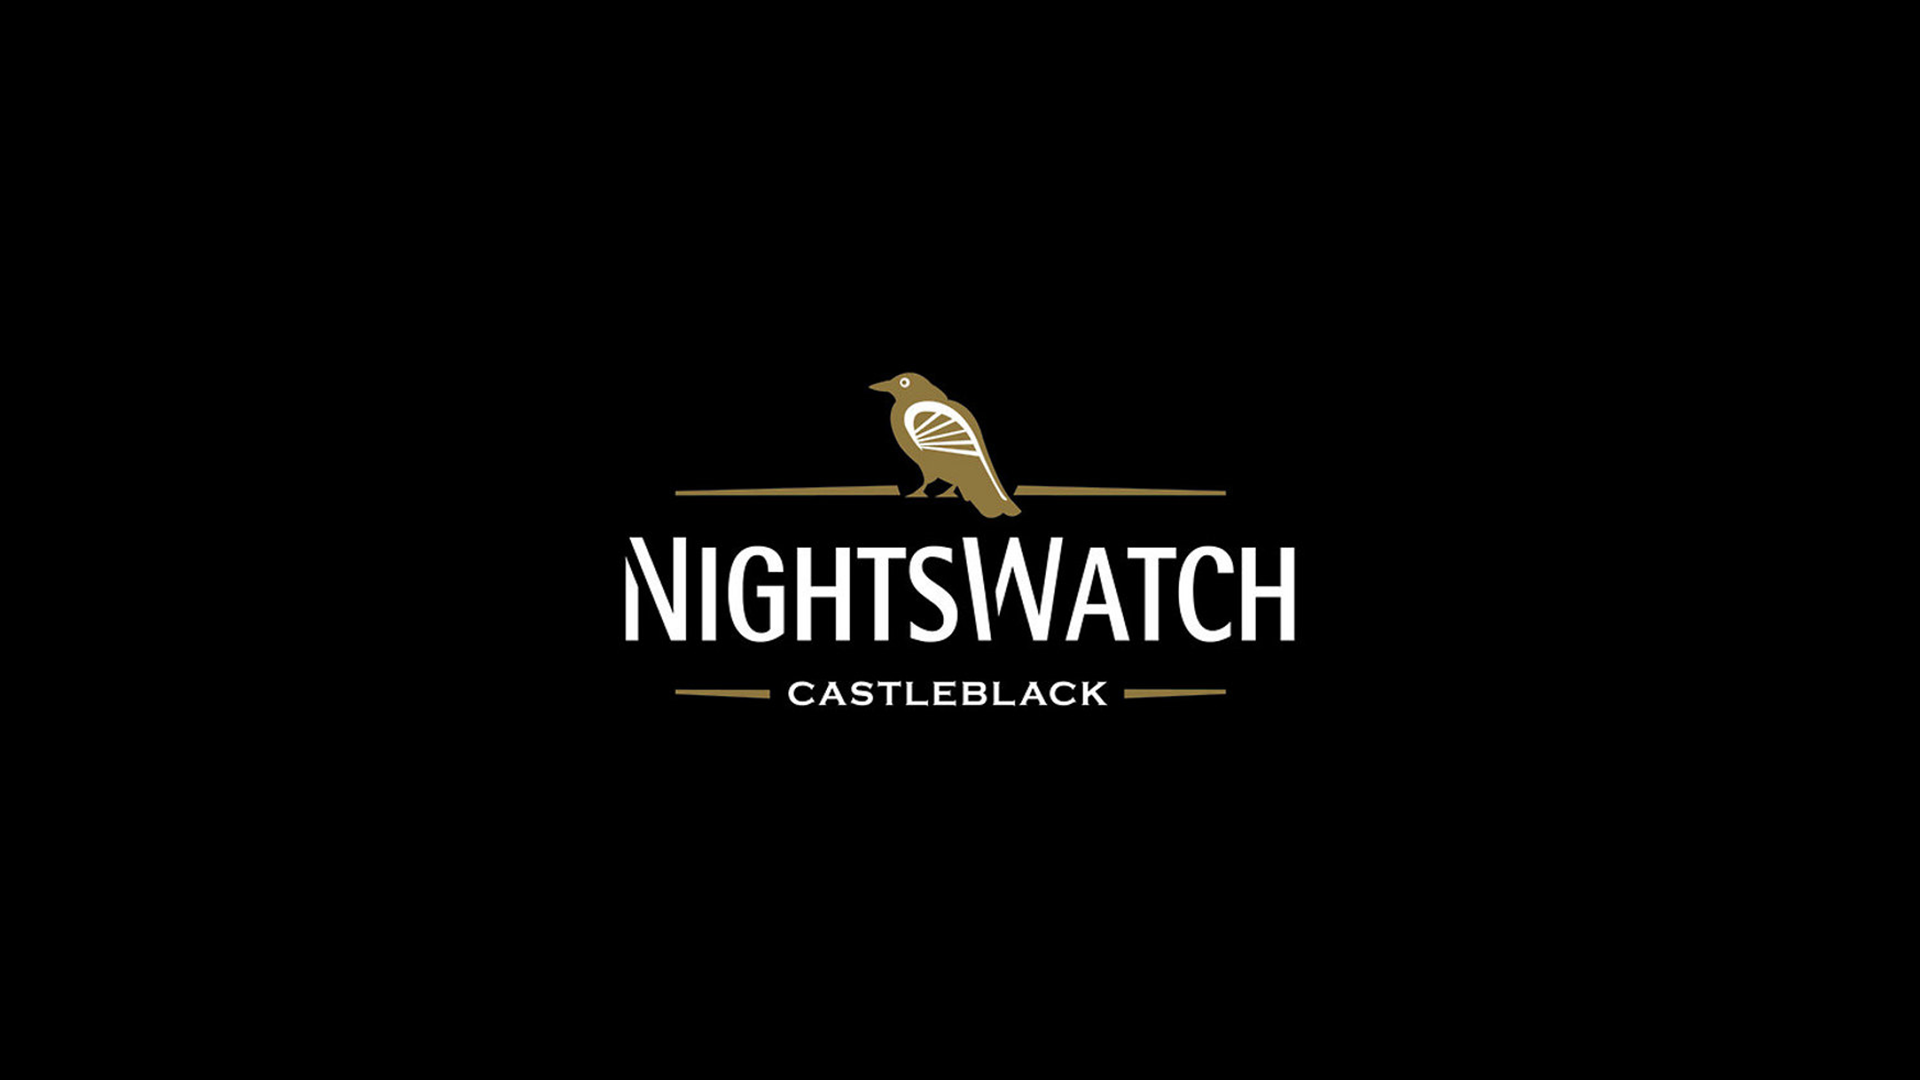 Game Of Thrones Song Of Ice And Fire Beer Alcohol Logo Night 039 S Watch Black Guinness Wallpaper 1920x1080 112748 Wallpaperup